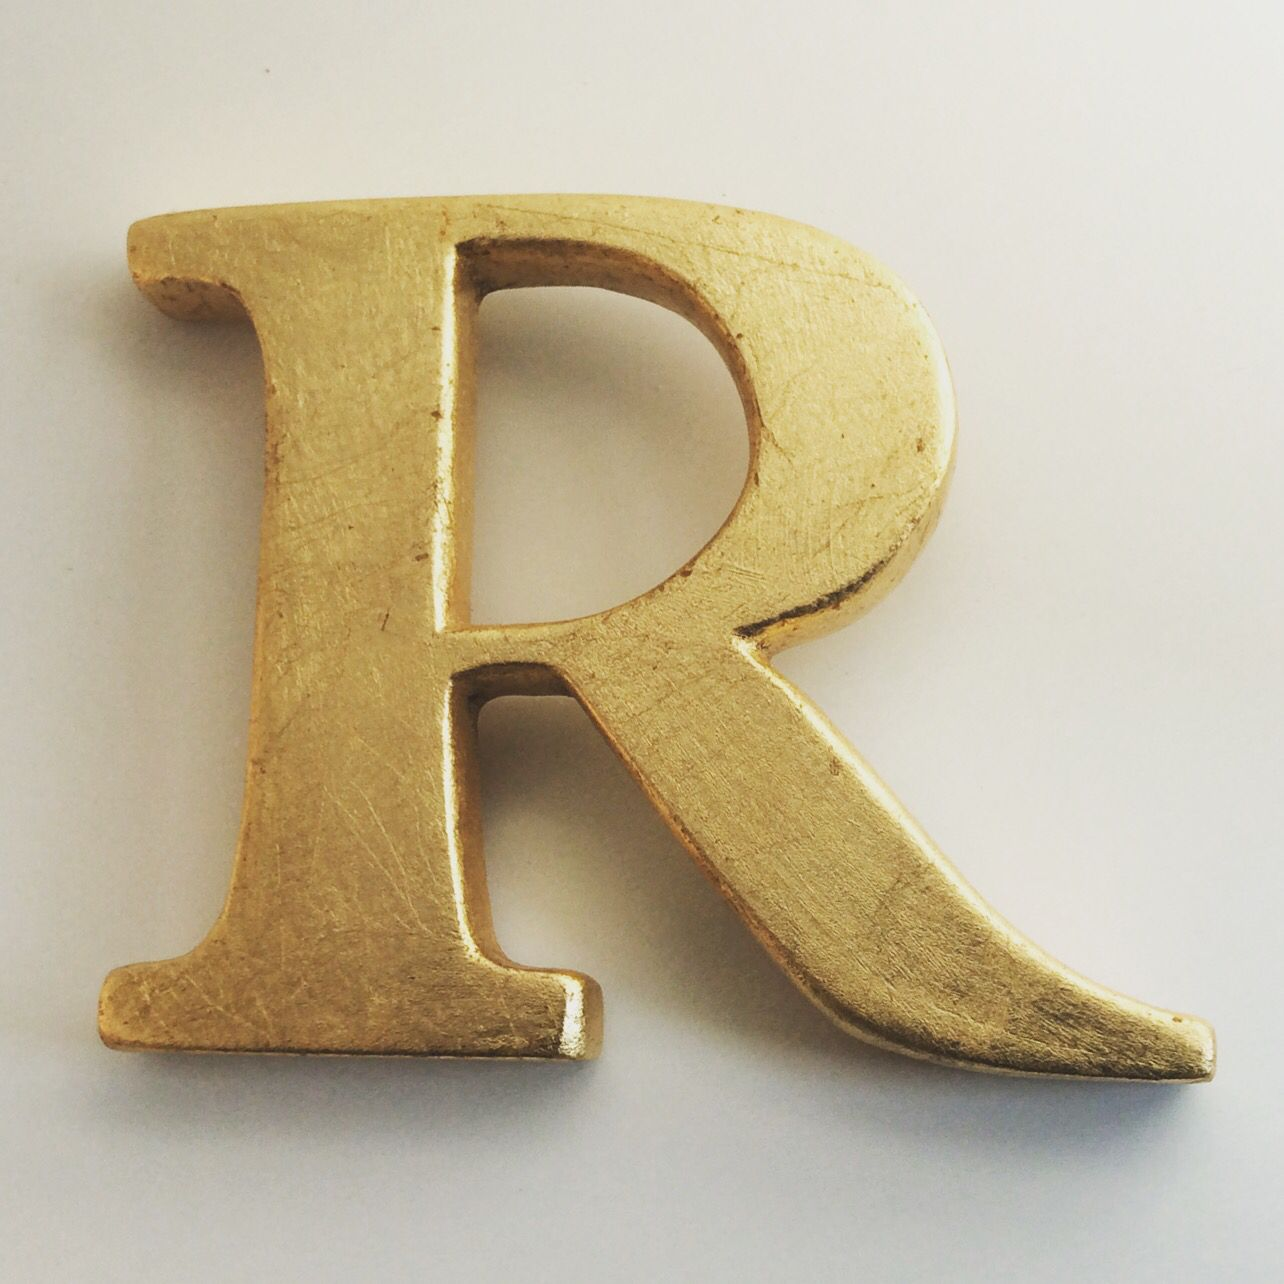 Gold Letter Wall Decor | Wall Plate Design Ideas